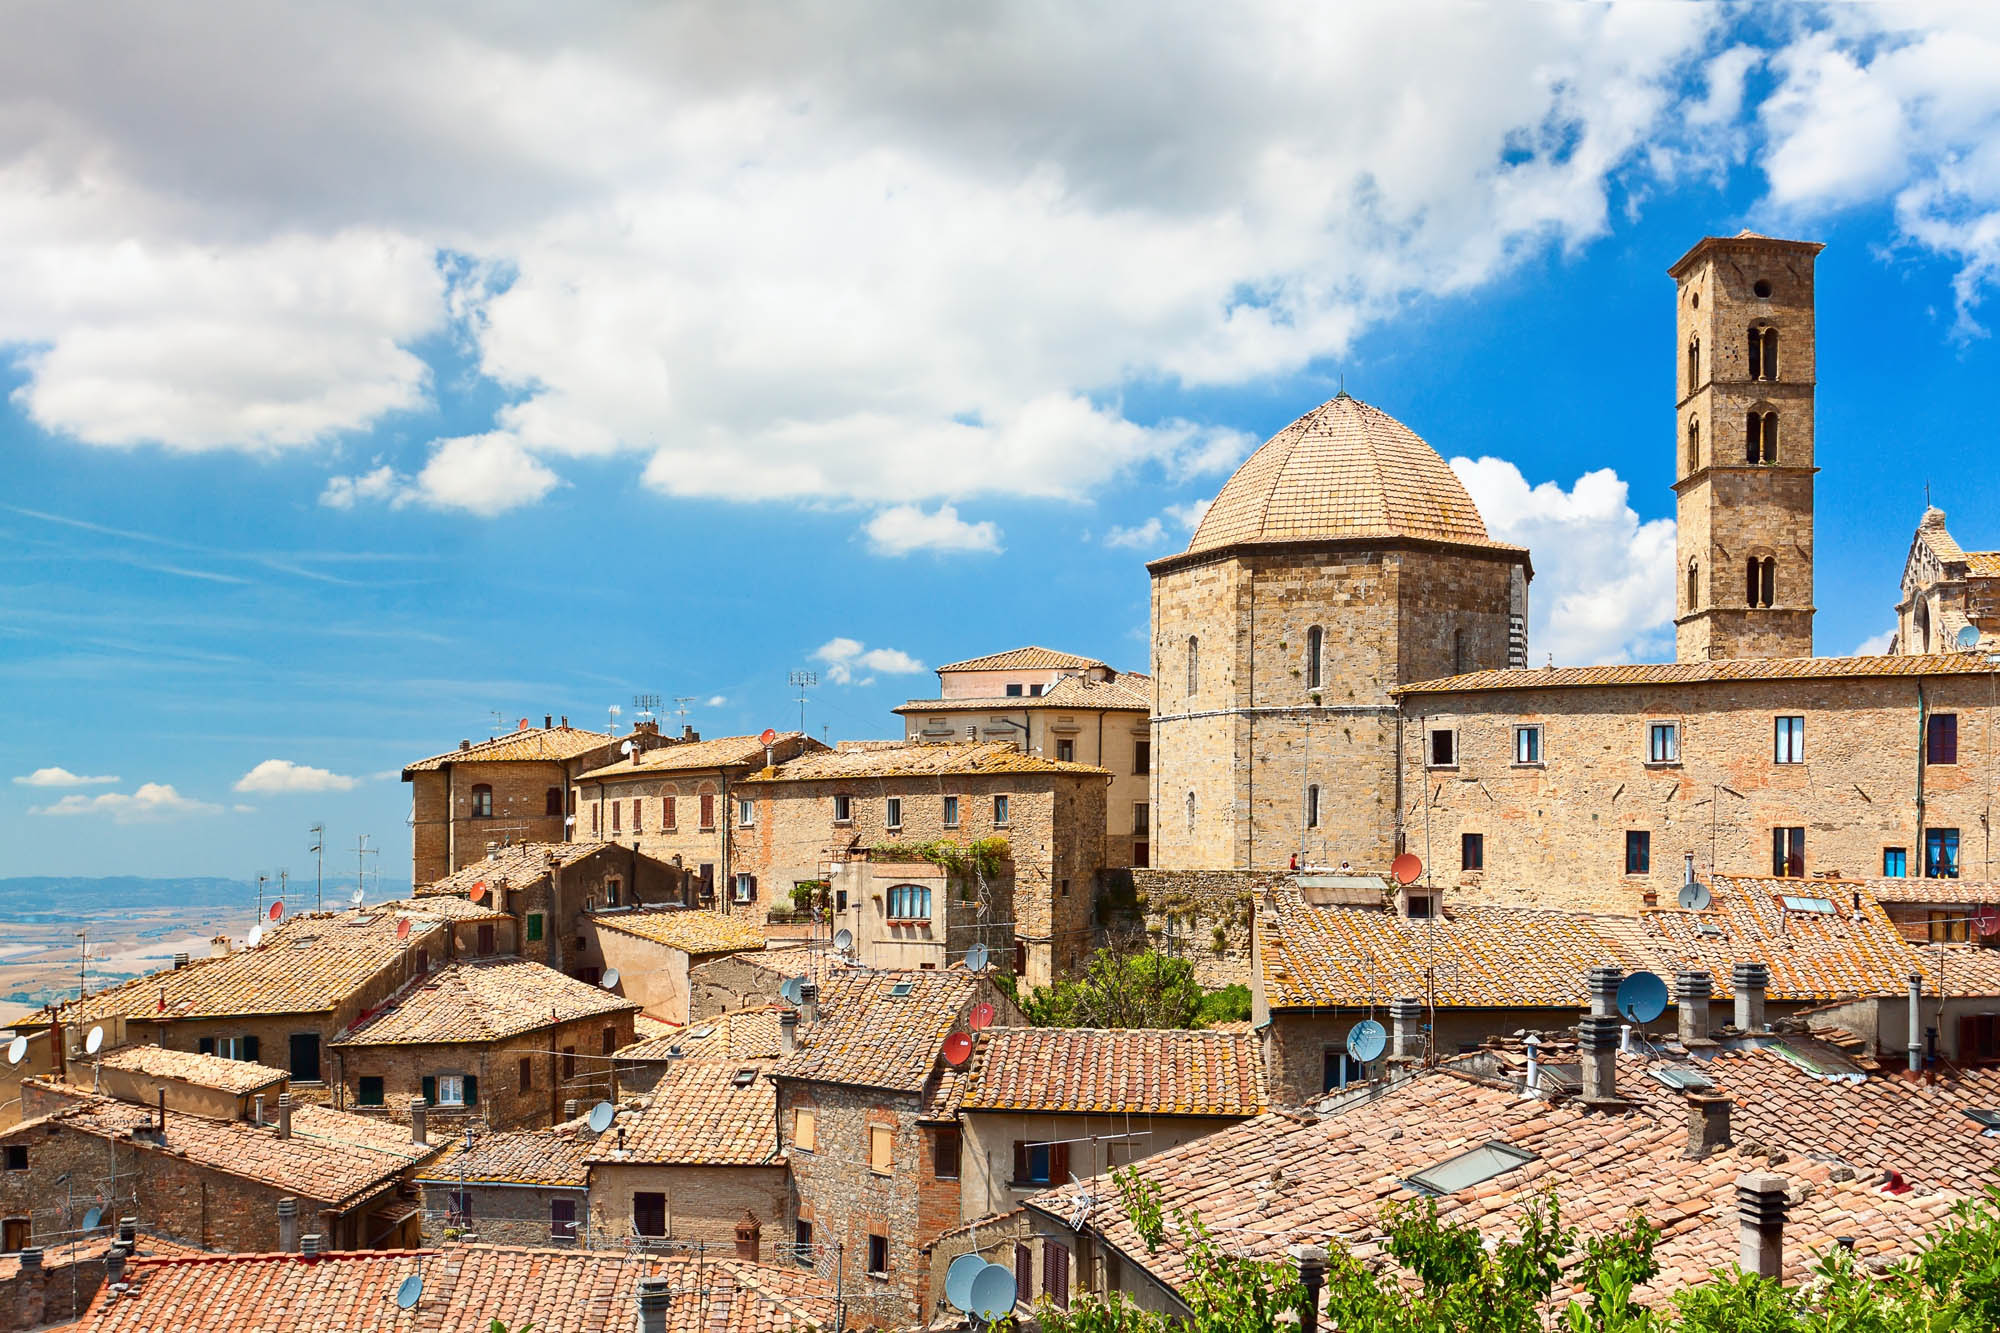 """View of the roofs of a small town """"Volterra"""" in Tuscany, Italy"""